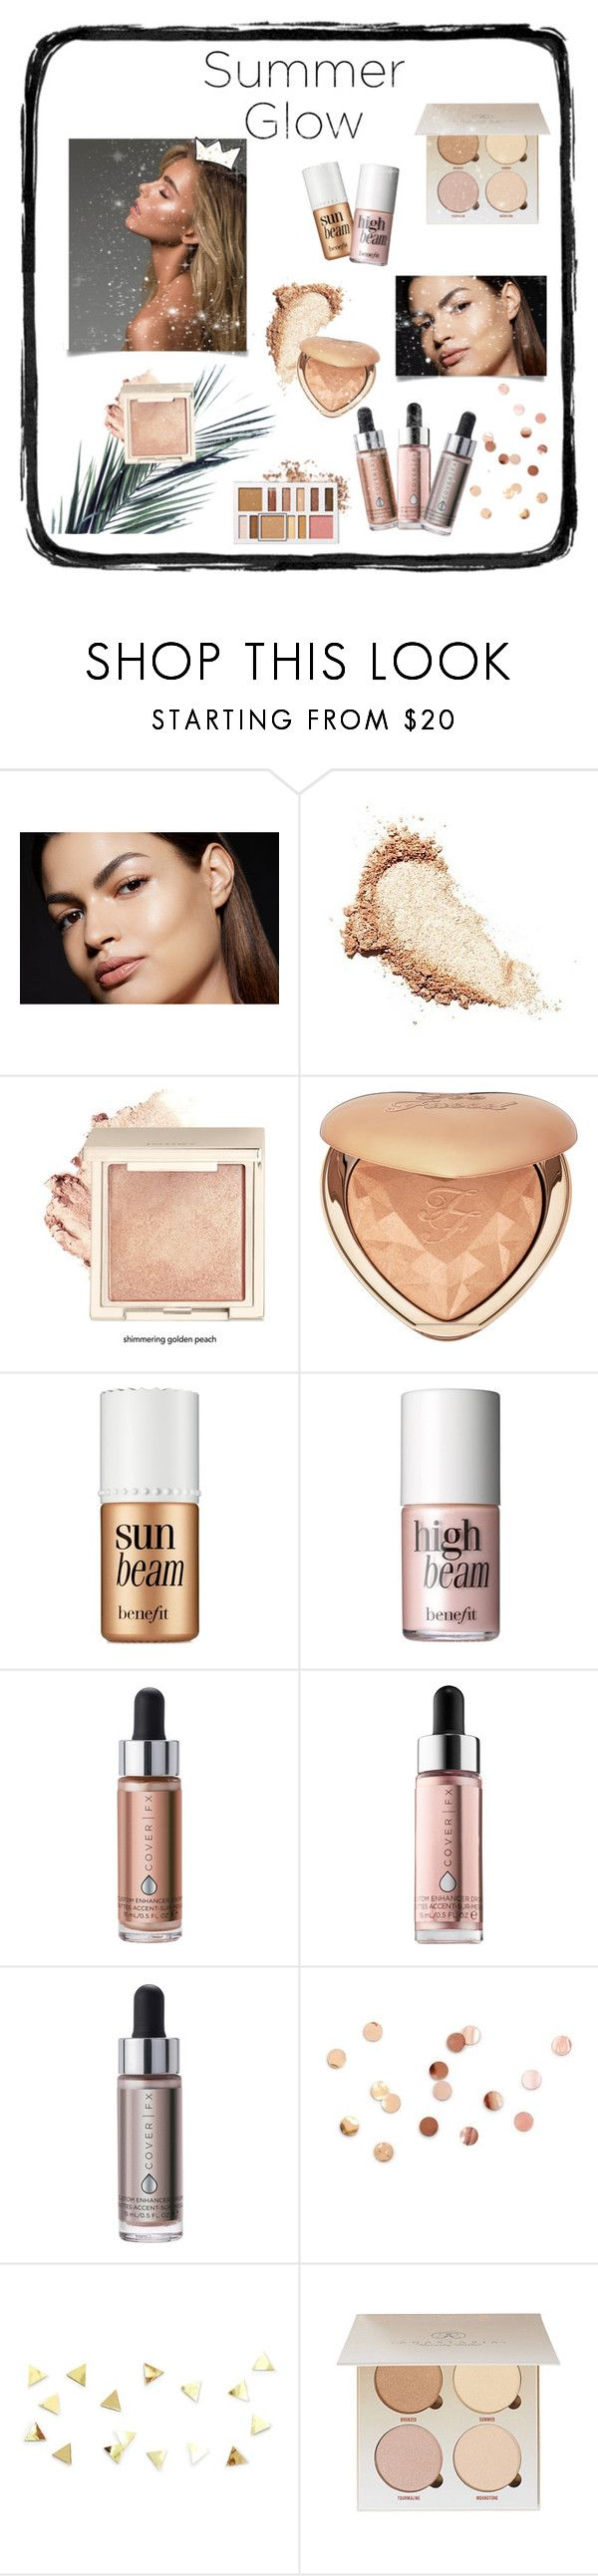 """""""Summer GLOW✨👑"""" by sabellacunningham ❤ liked on Polyvore featuring Anastasia Beverly Hills, Too Faced Cosmetics, Benefit, Cover FX and Umbra"""